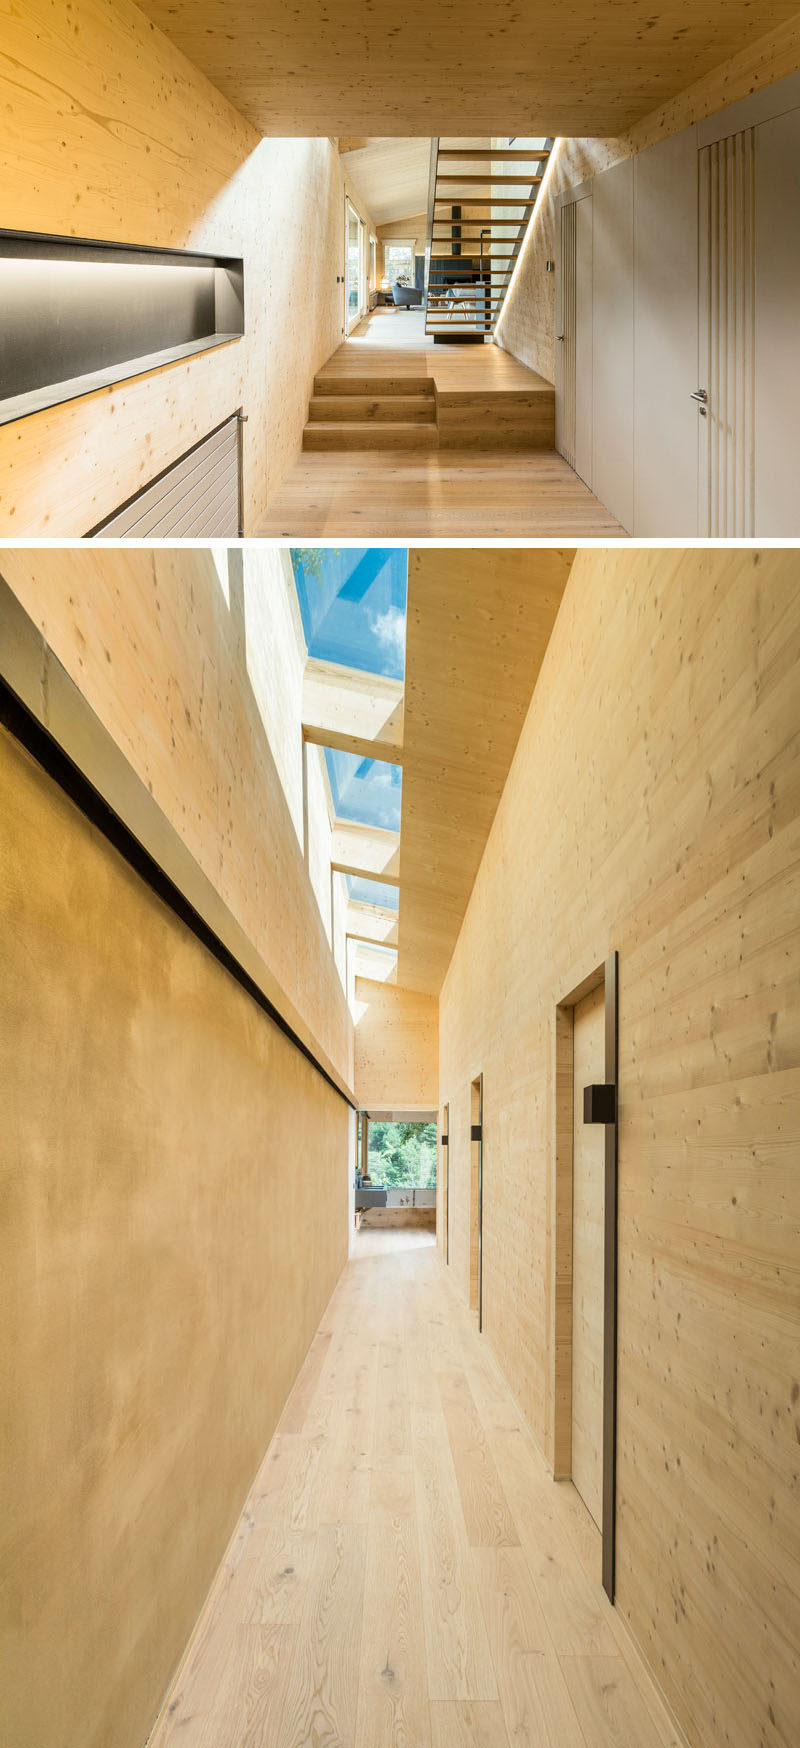 This mostly wood hallway that leads to the bedrooms and bathroom, has skylights to allow natural light to filter through to the interior, #Hallway #Skylights